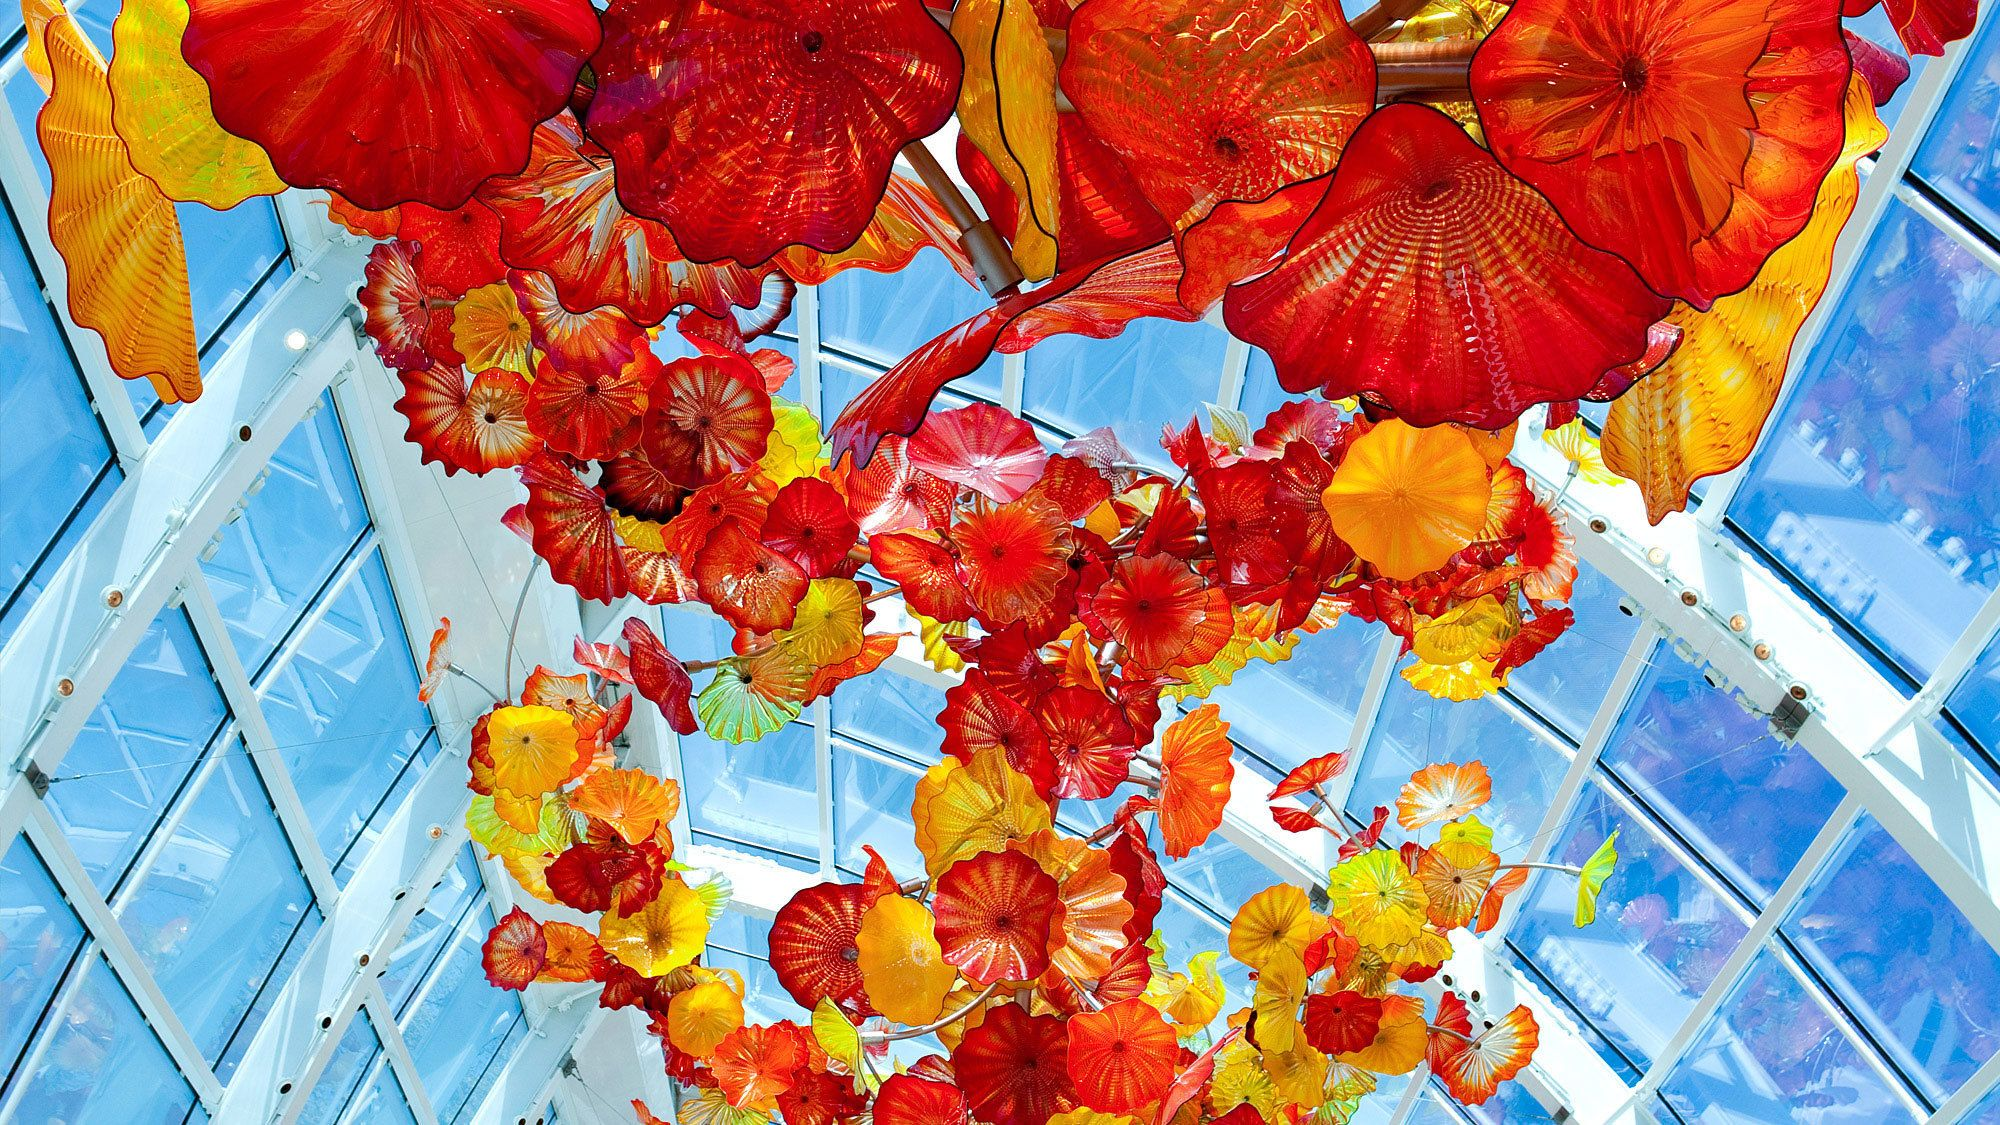 Color glass sculptures hanging from the ceiling in the Chihuly Garden and Glass in Seattle